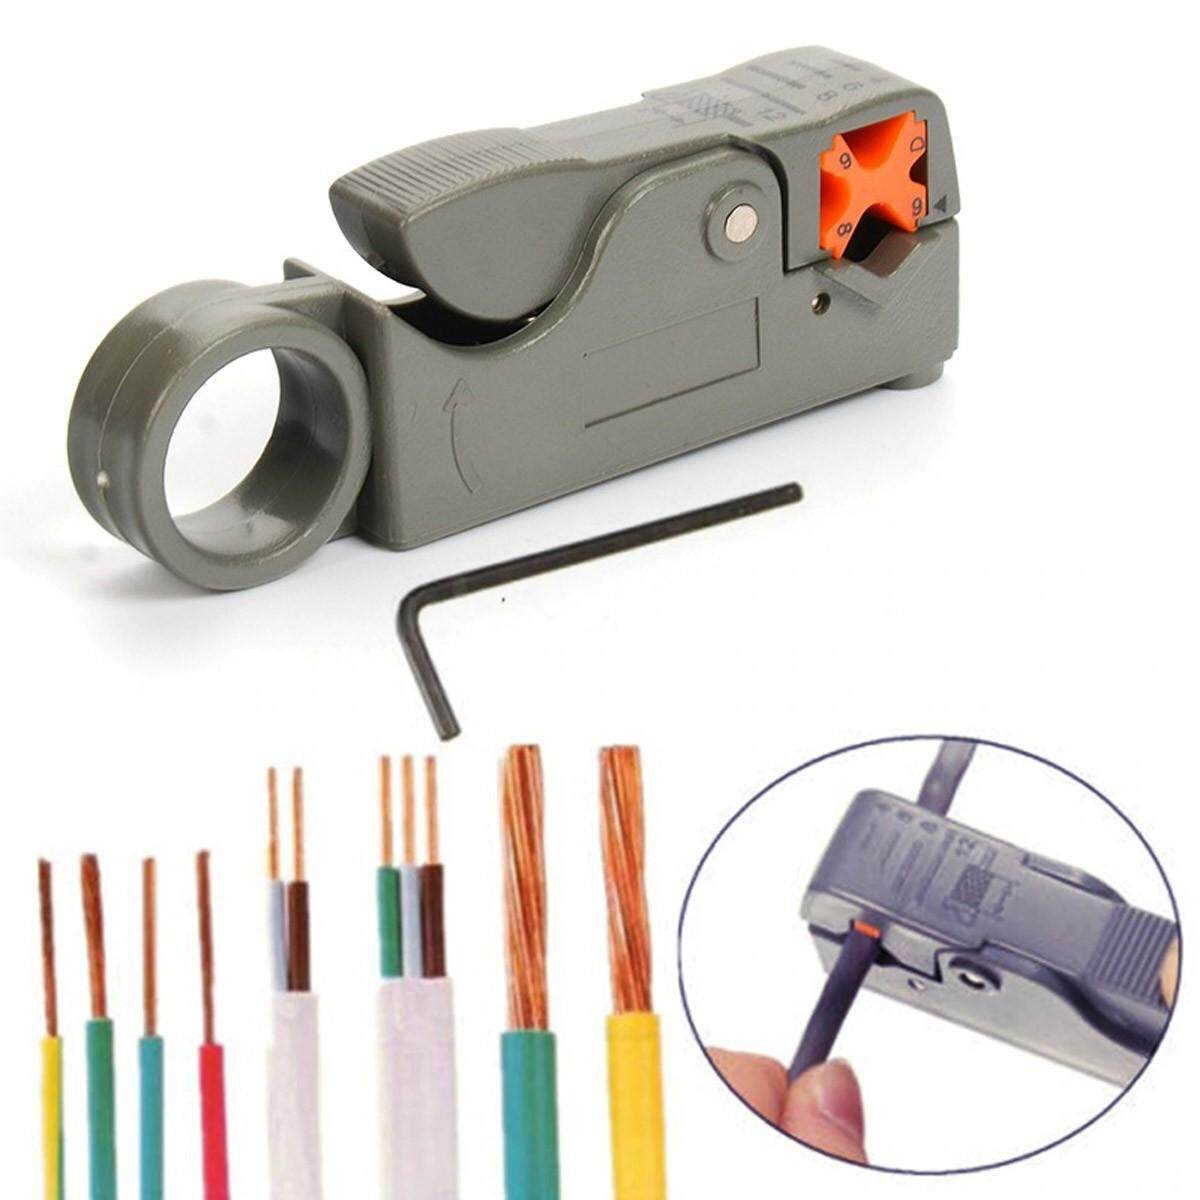 Automatic Stripping Pliers Multifunctional Wire Stripper Cable Crimping Tool With Wrench